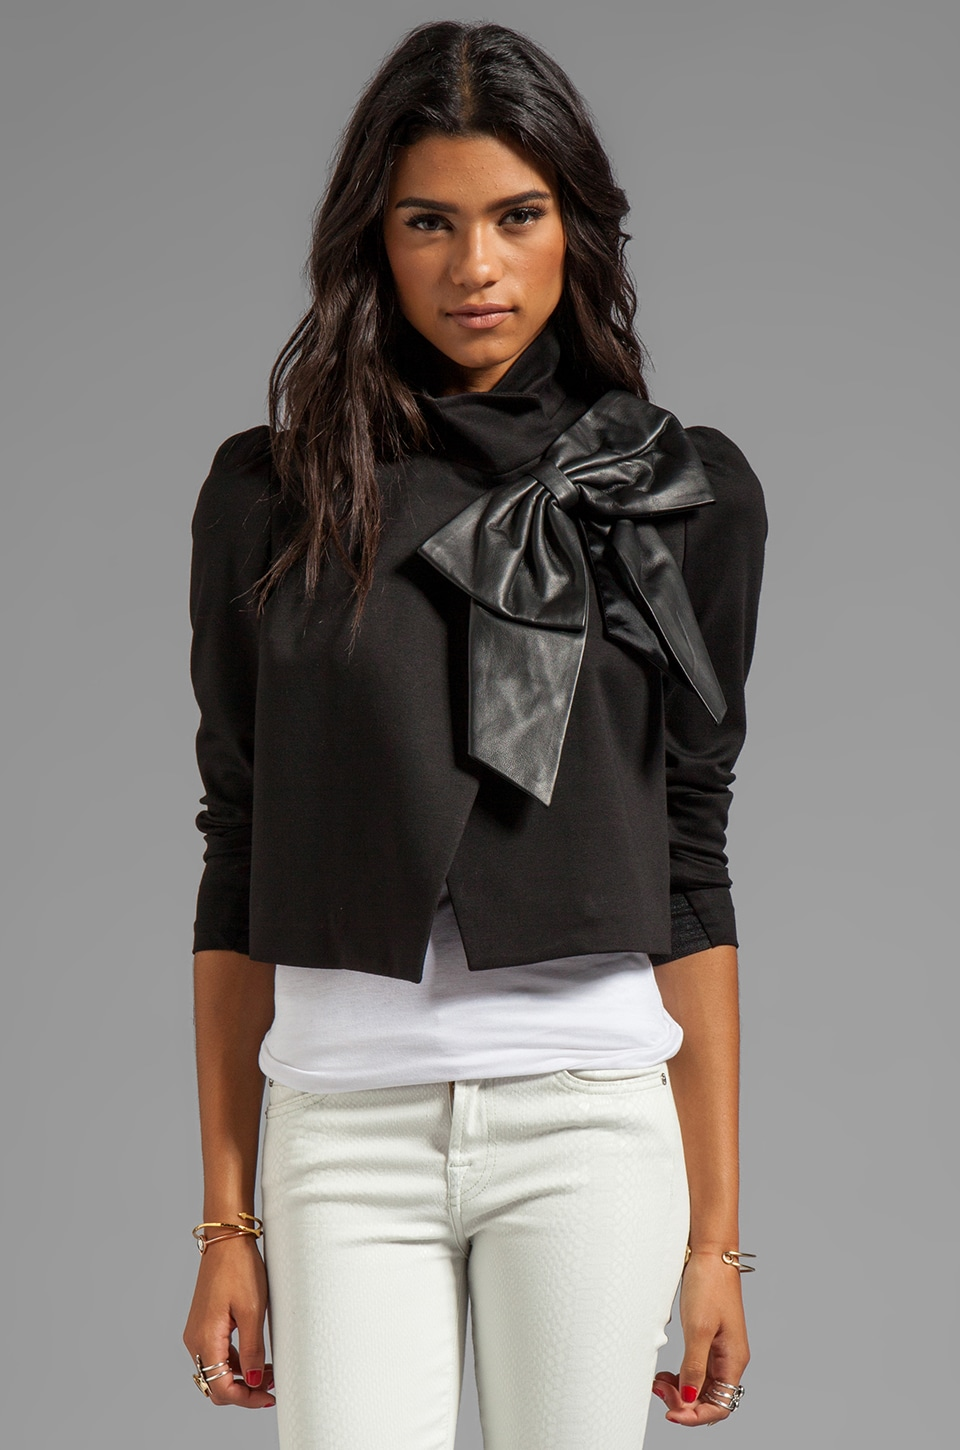 Alice + Olivia Shandy Side Leather Bow Cropped Jacket in Black